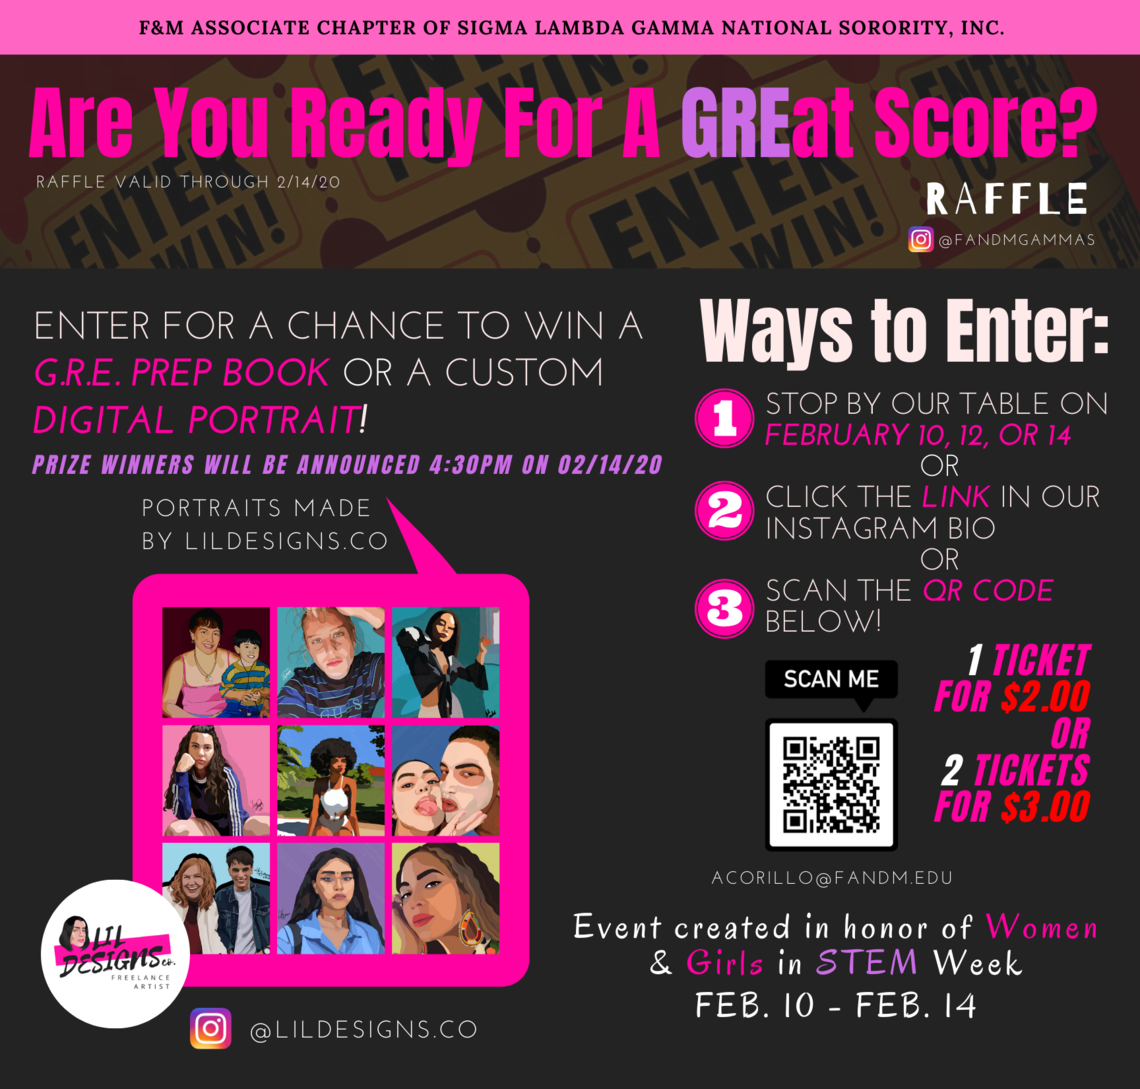 In honor of Women & Girls in STEM Week, the women of Sigma Lambda Gamma National Sorority, Incorporated will be tabling to recognize and highlight the endless accomplishments made by women in STEM. As a second part to both Women & Girls in STEM Week, the Gammas will be holding a raffle for a chance to WIN a GRE book and a customized self/couples portrait [in collaboration with @lildesignsco]   Come say hi to the F&M Gammas on February 10th, 12th, and 14th from 11AM-3PMin the Steinman College Center Atrium with tons about facts about the trailblazing women who made history!  What do you say? Are YOU Ready for a GREat Score?